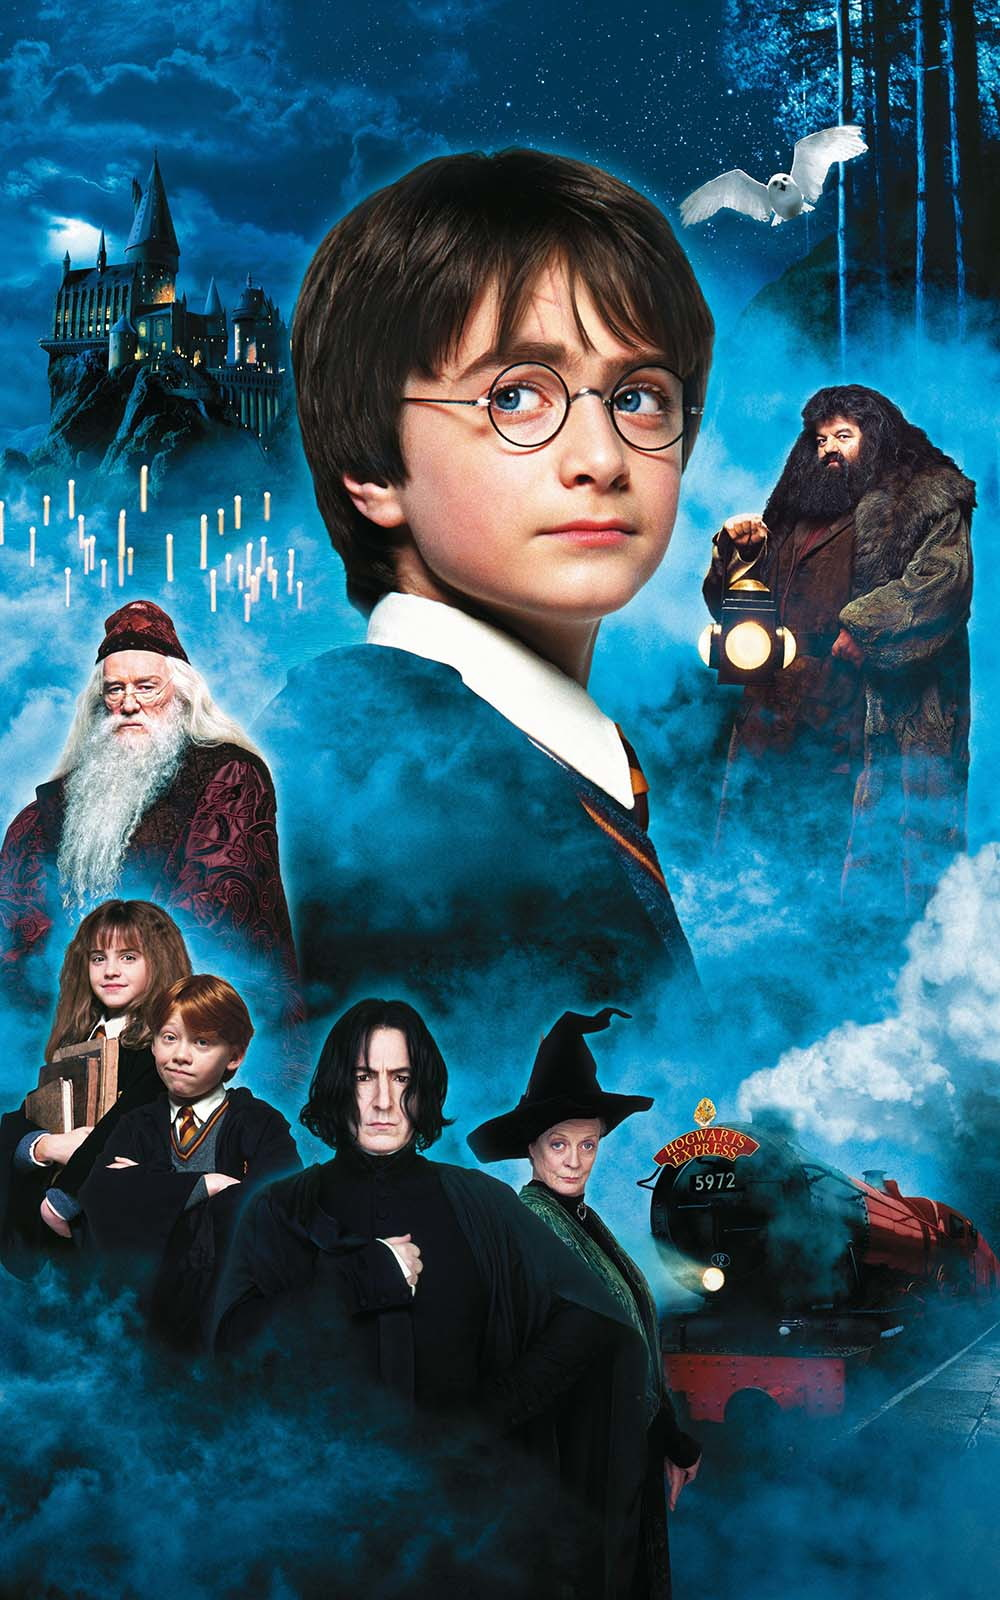 Big Poster Harry Potter e a Pedra Filosofal LO03 90x60 cm no Elo7 ...